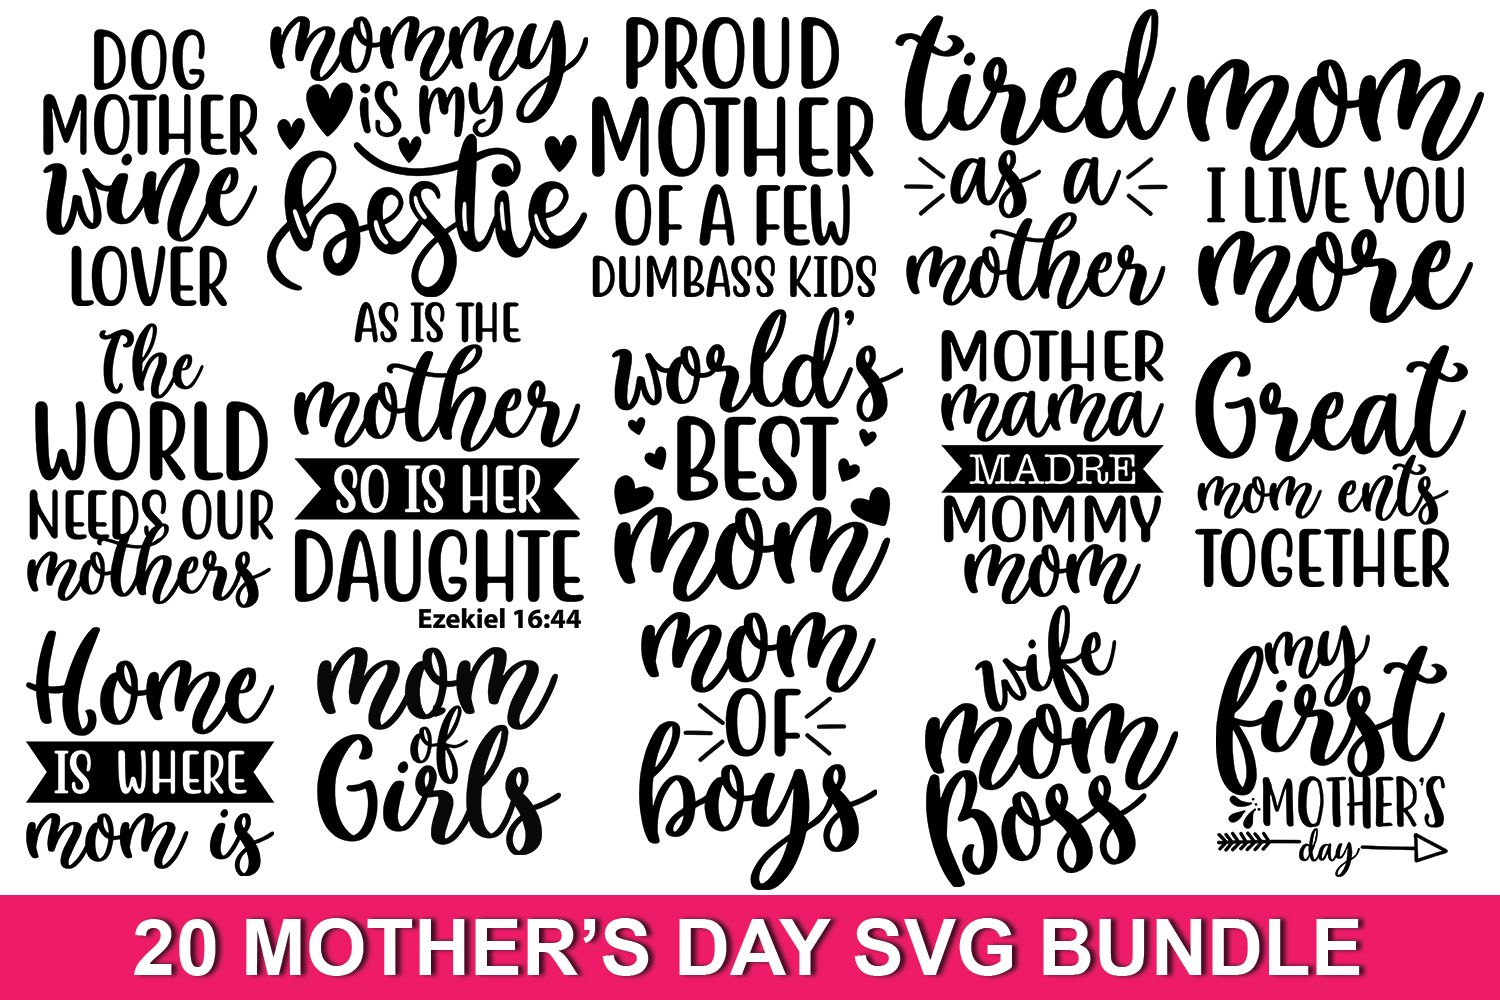 Free Are you searching for mothers day png images or vector? 20 Mother S Day Quotes Svg Bundle Graphic By Svgbundle Net Creative Fabrica Mothers Day Quotes Quote Of The Day Svg Quotes SVG, PNG, EPS, DXF File